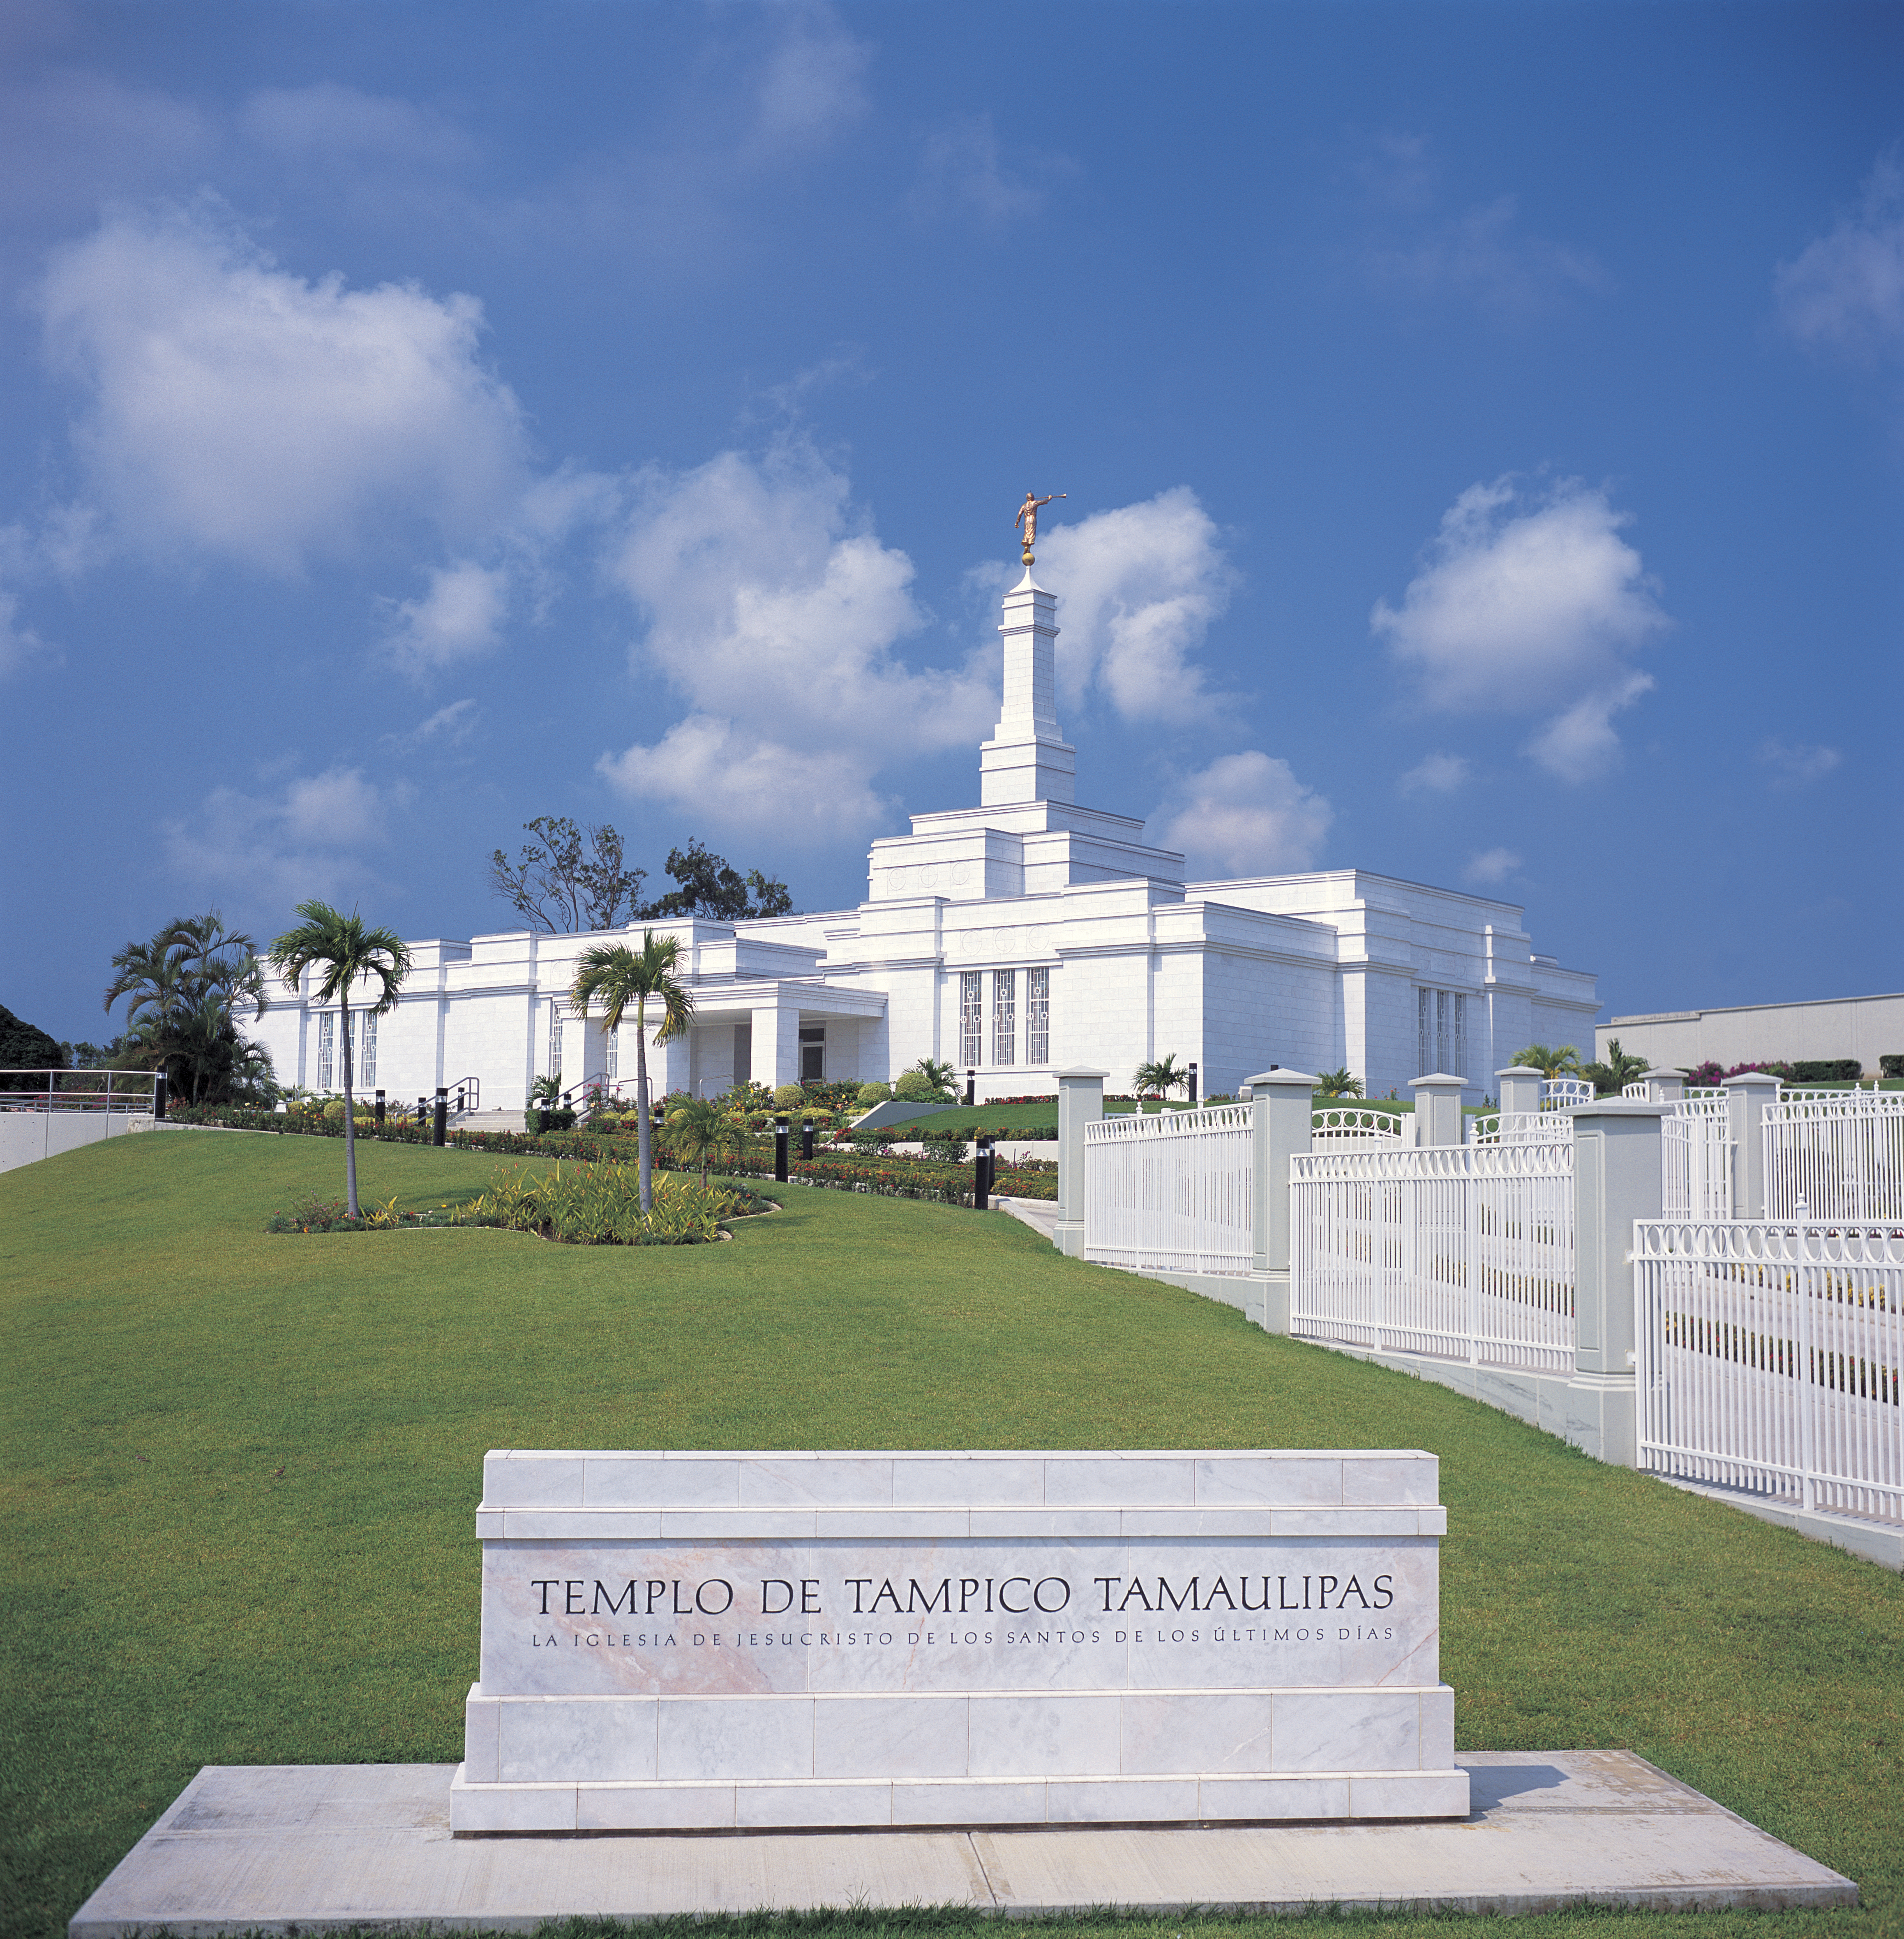 The Tampico Mexico Temple, including the name sign and scenery.